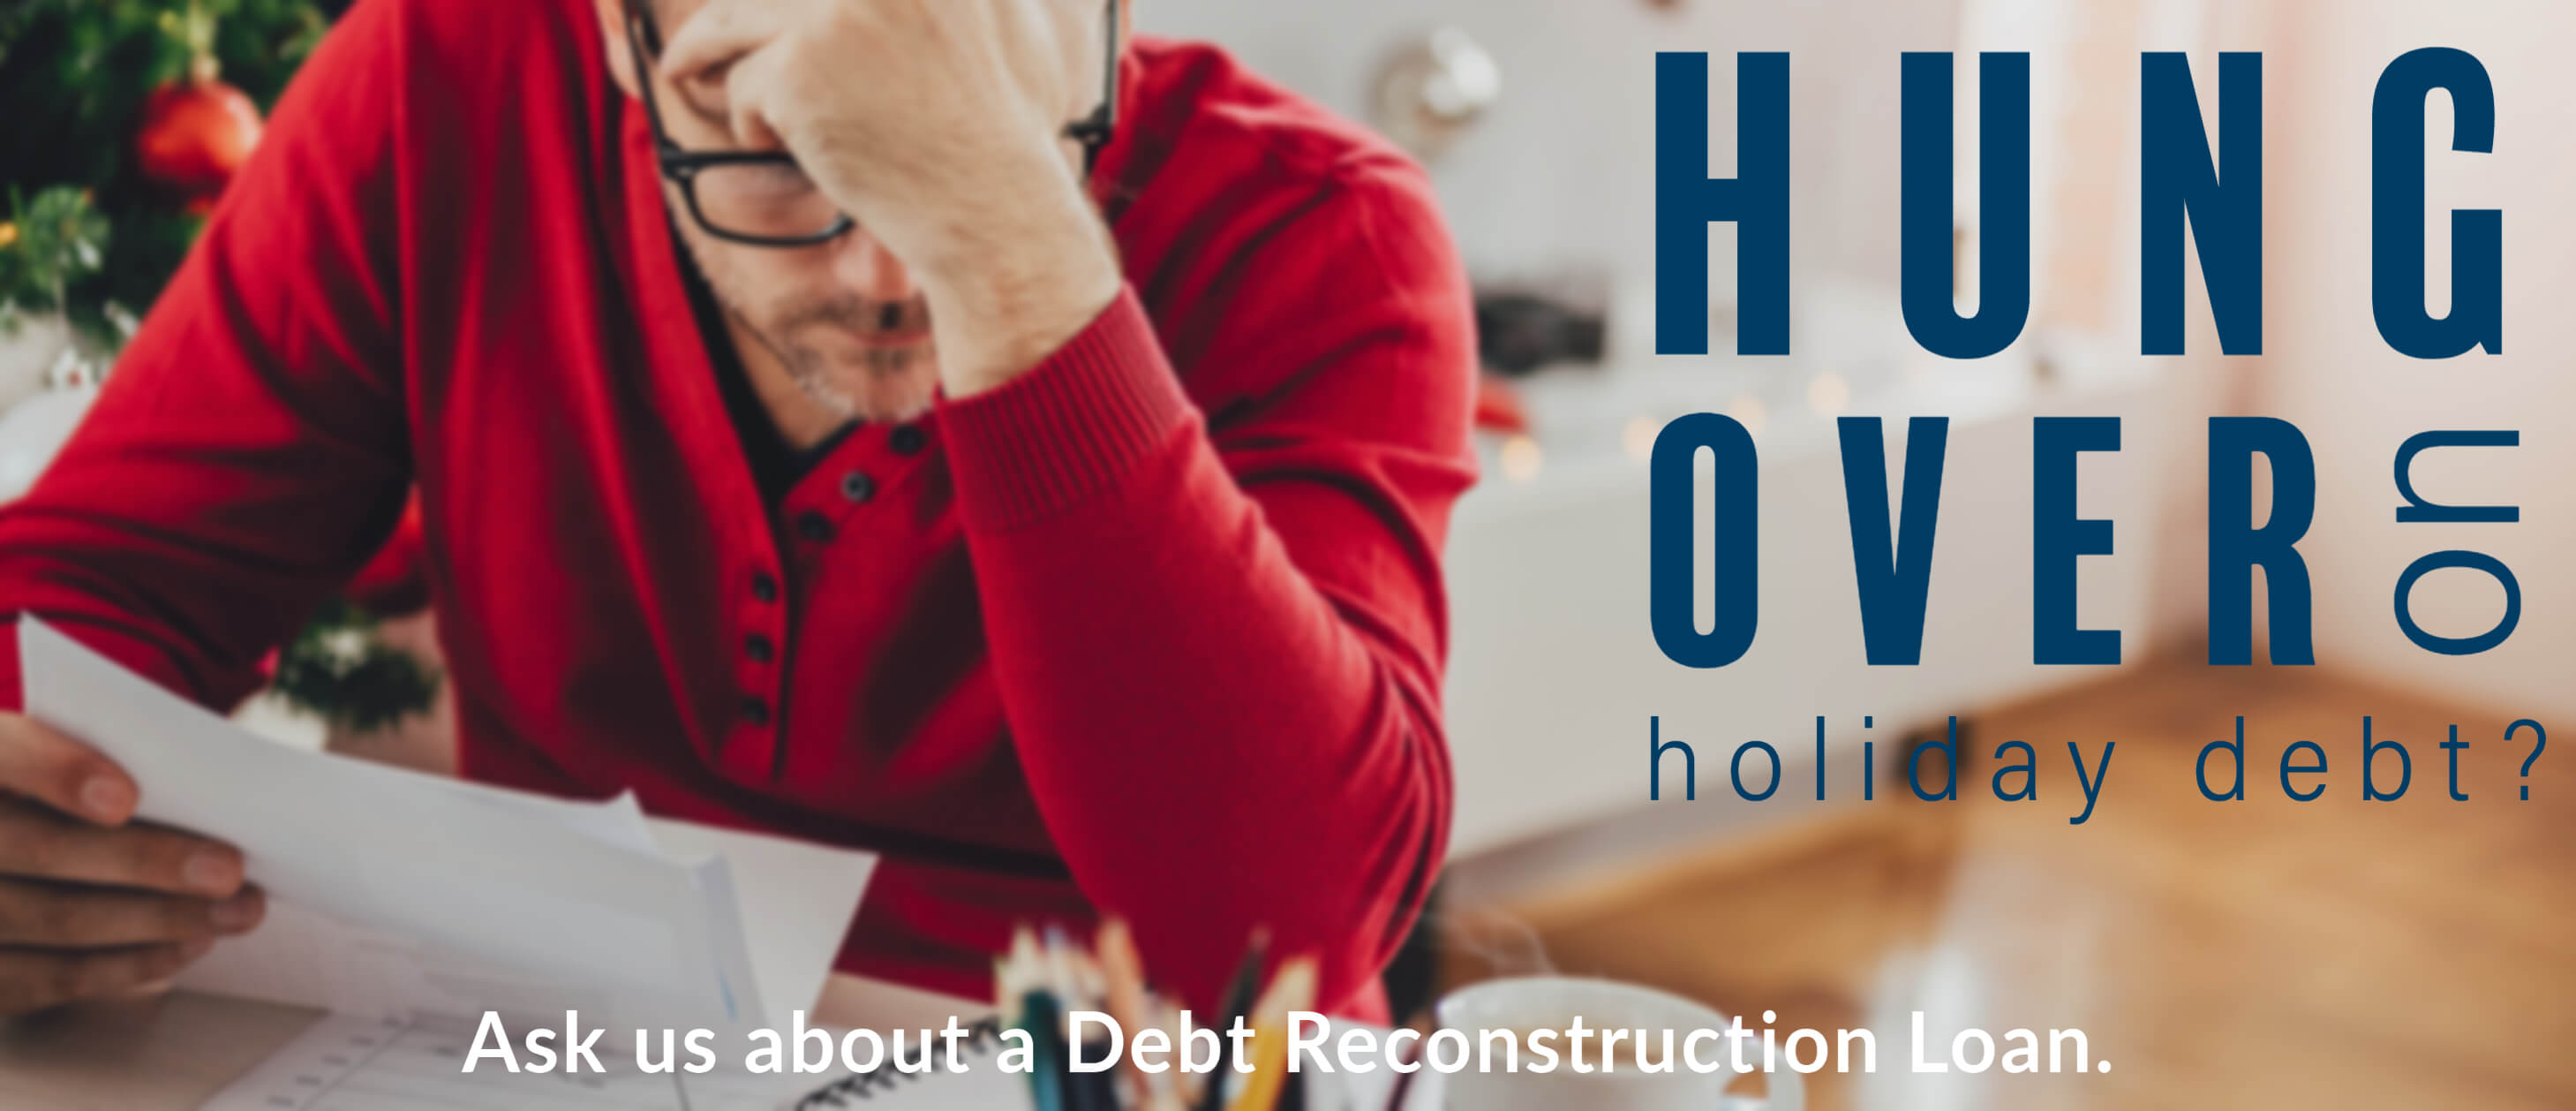 Hungover on Holiday Debt . Debt Reconstruction